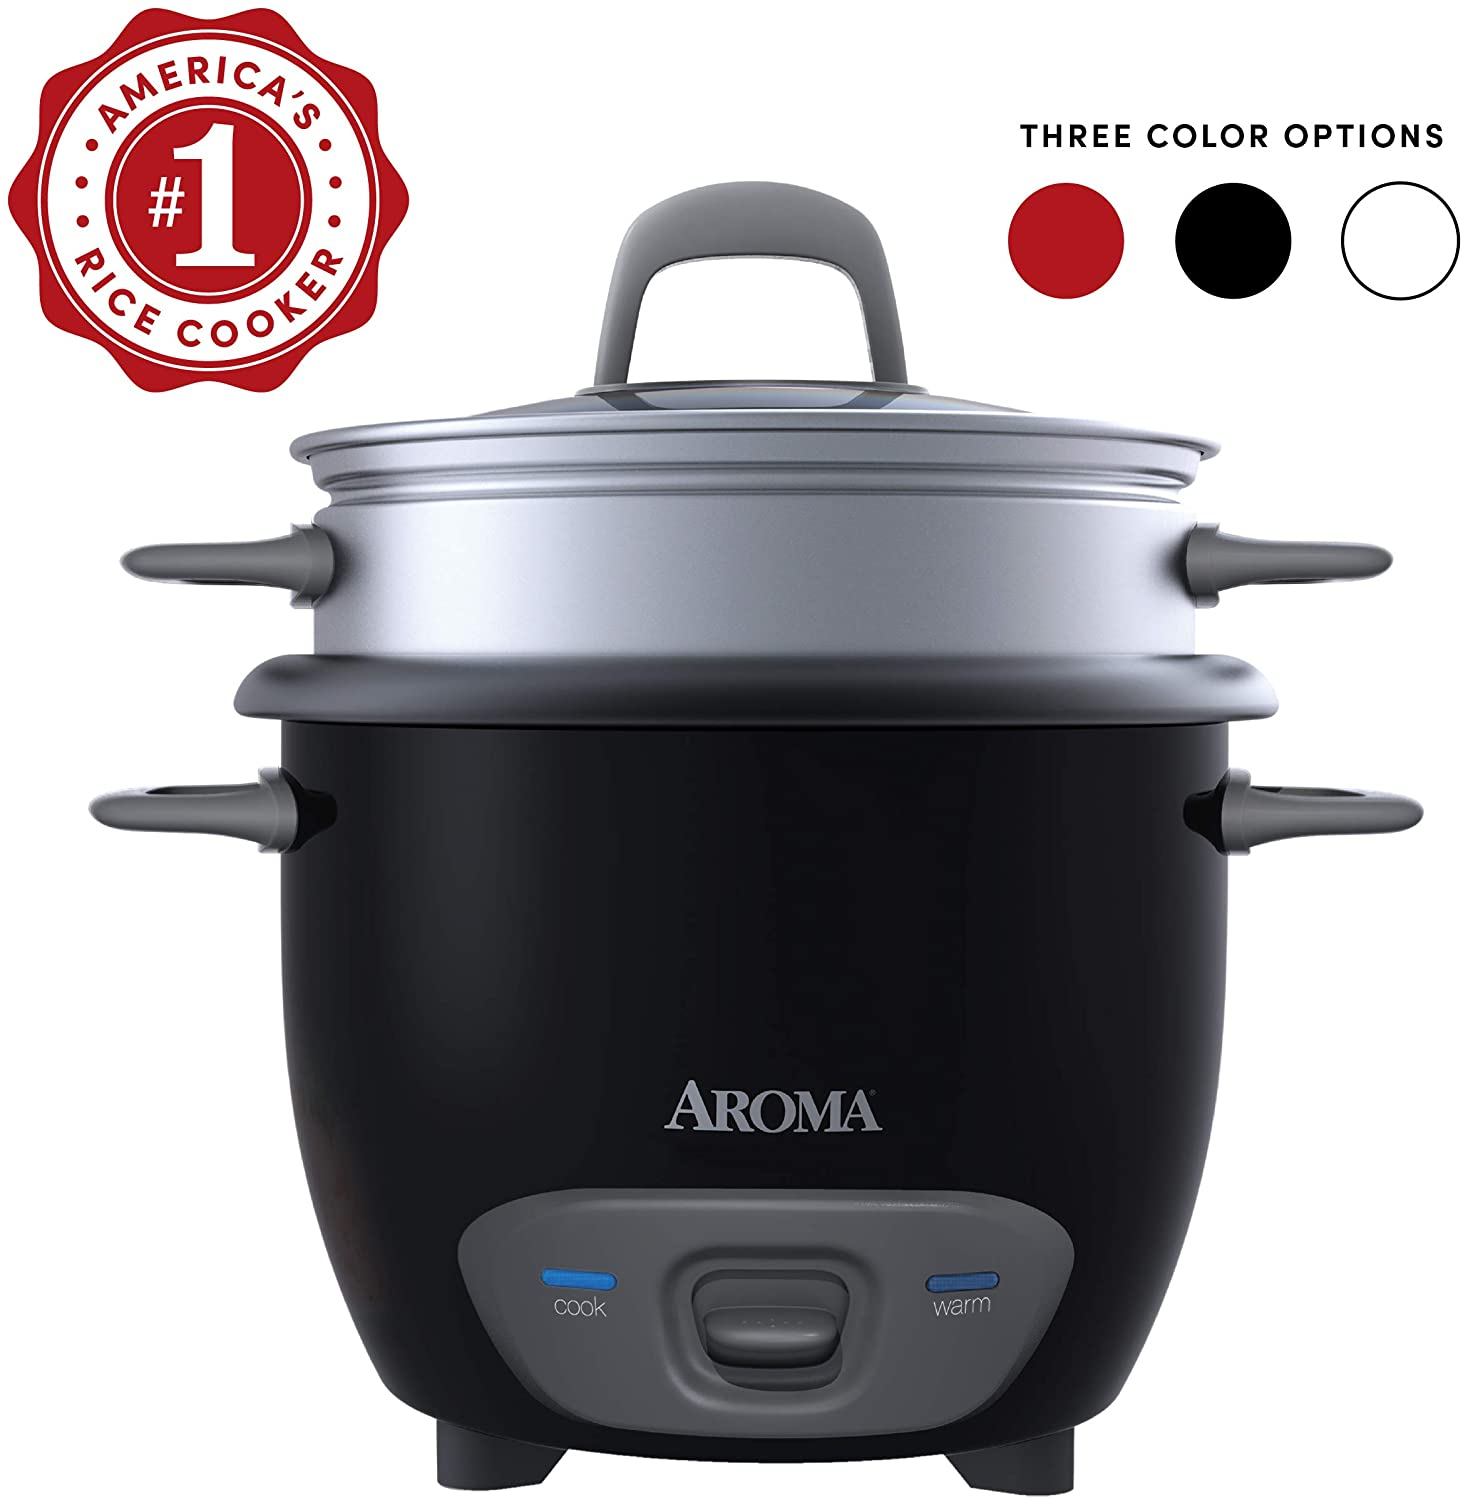 Aroma Housewares ARC 731-1 Pot-Style Rice Cooker and Steamer